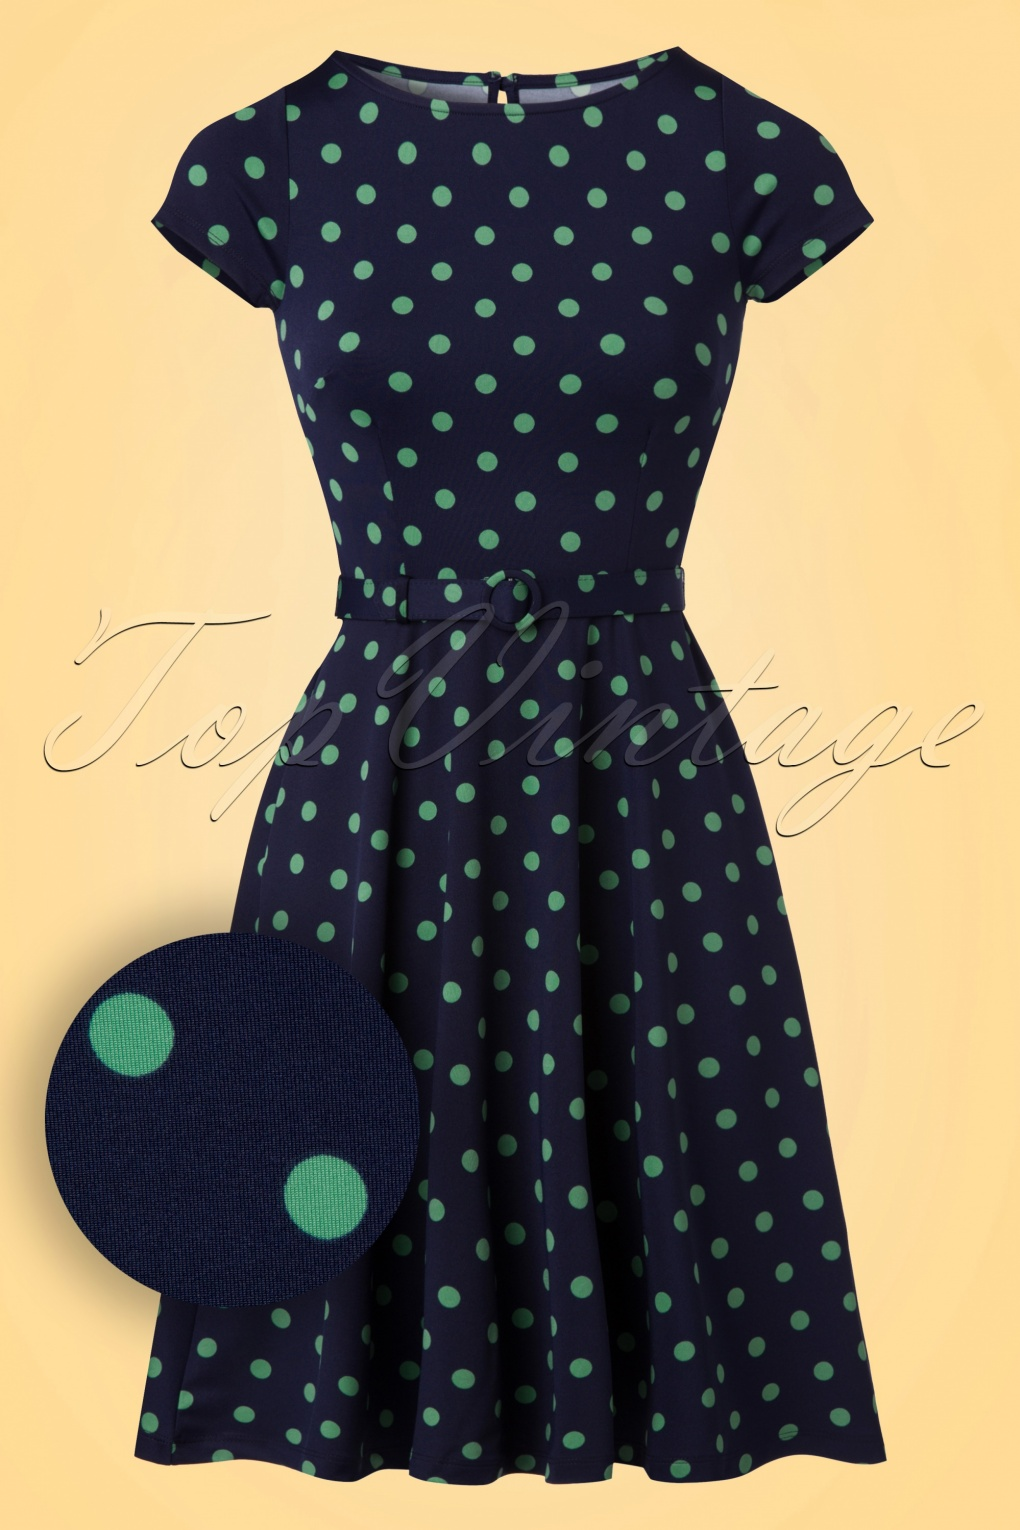 1960s Style Dresses- Retro Inspired Fashion 60s Betty PartyPolka Dress in Nuit Blue £87.92 AT vintagedancer.com